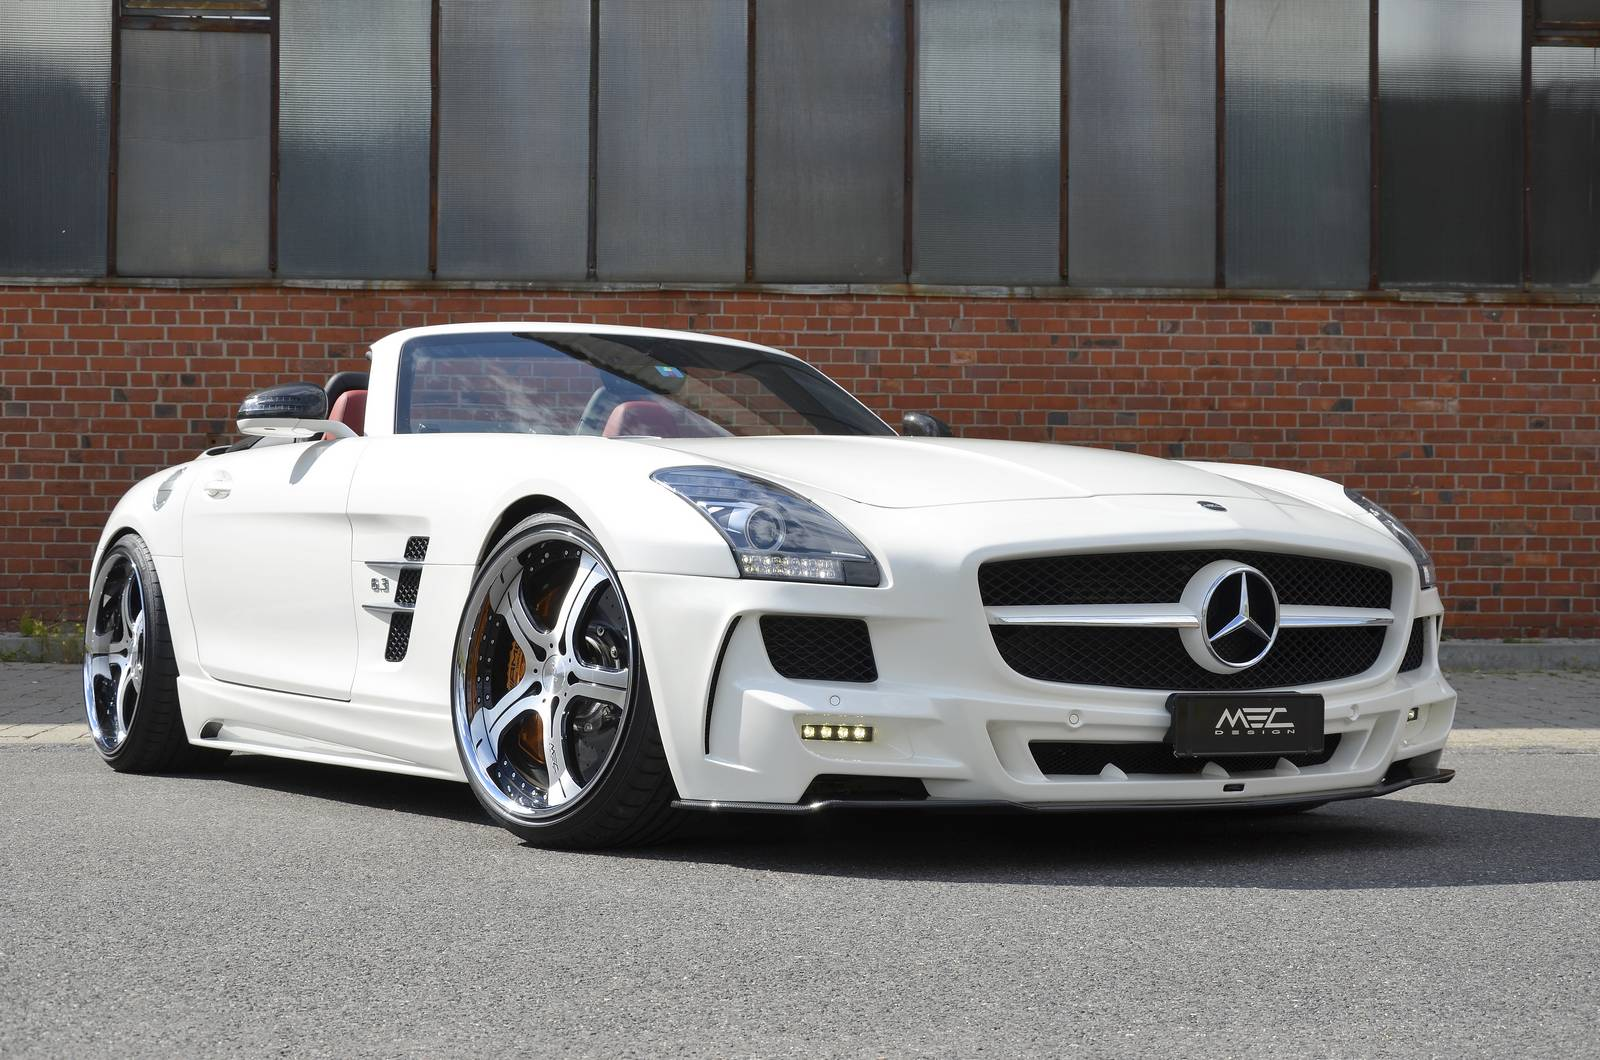 gallery mercedes benz sls amg roadster by mec design gtspirit. Black Bedroom Furniture Sets. Home Design Ideas